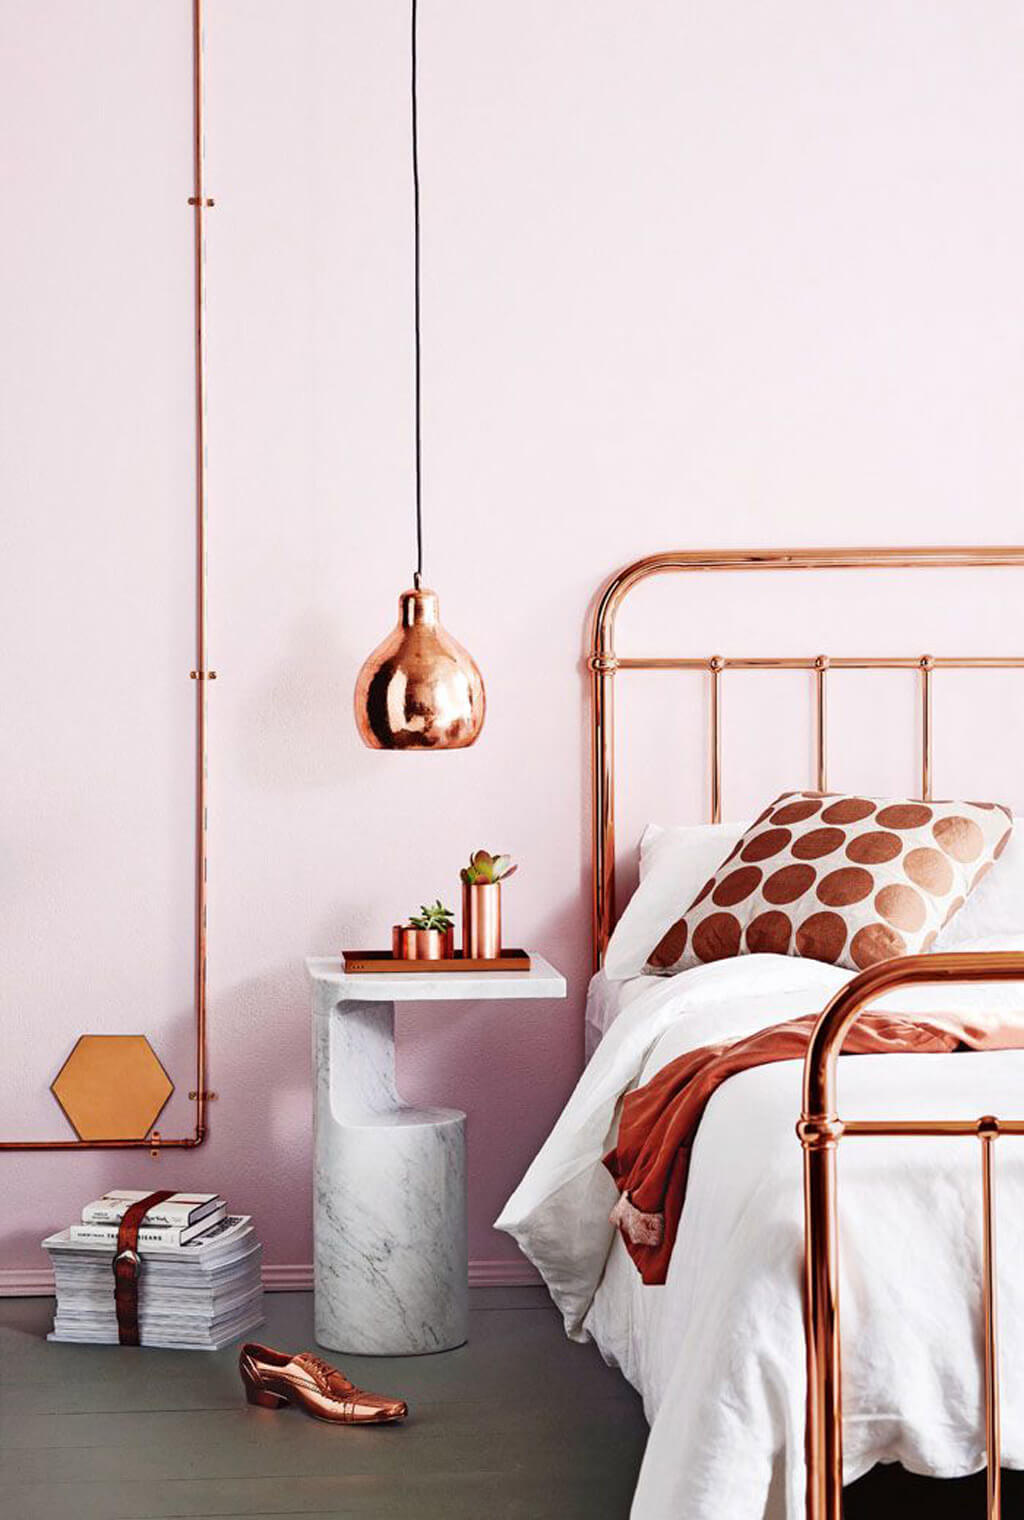 Rose Gold Decor 16 Rose Gold And Copper Details For Stylish Interior Decor